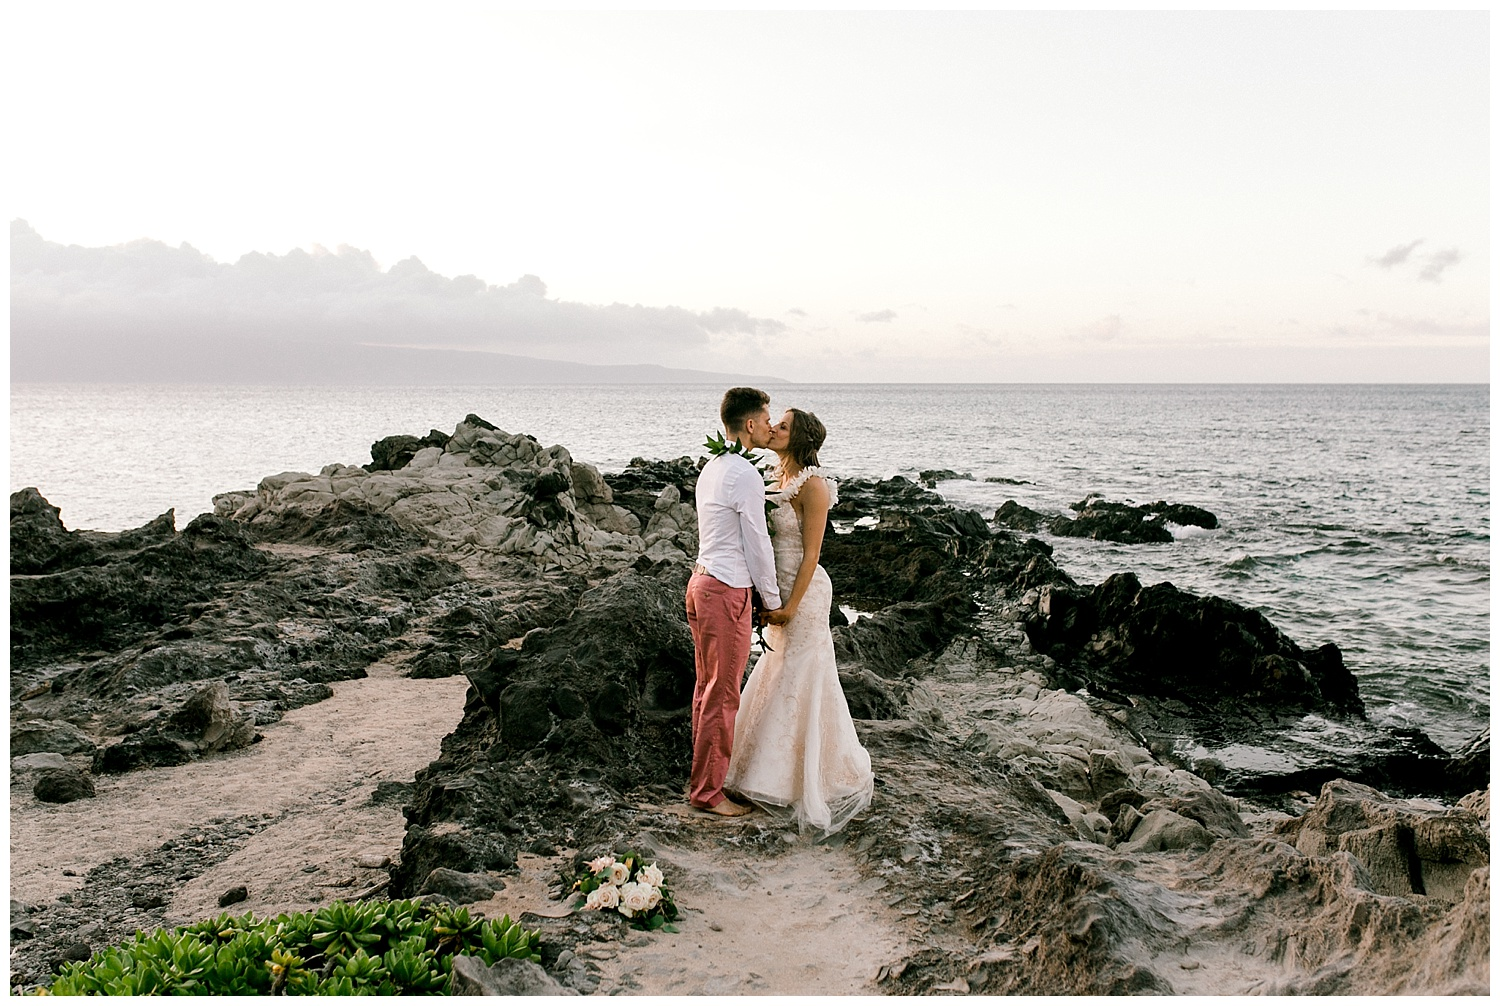 Maui-Elopement-Photography-Ironwoods-Elopement_0149.jpg